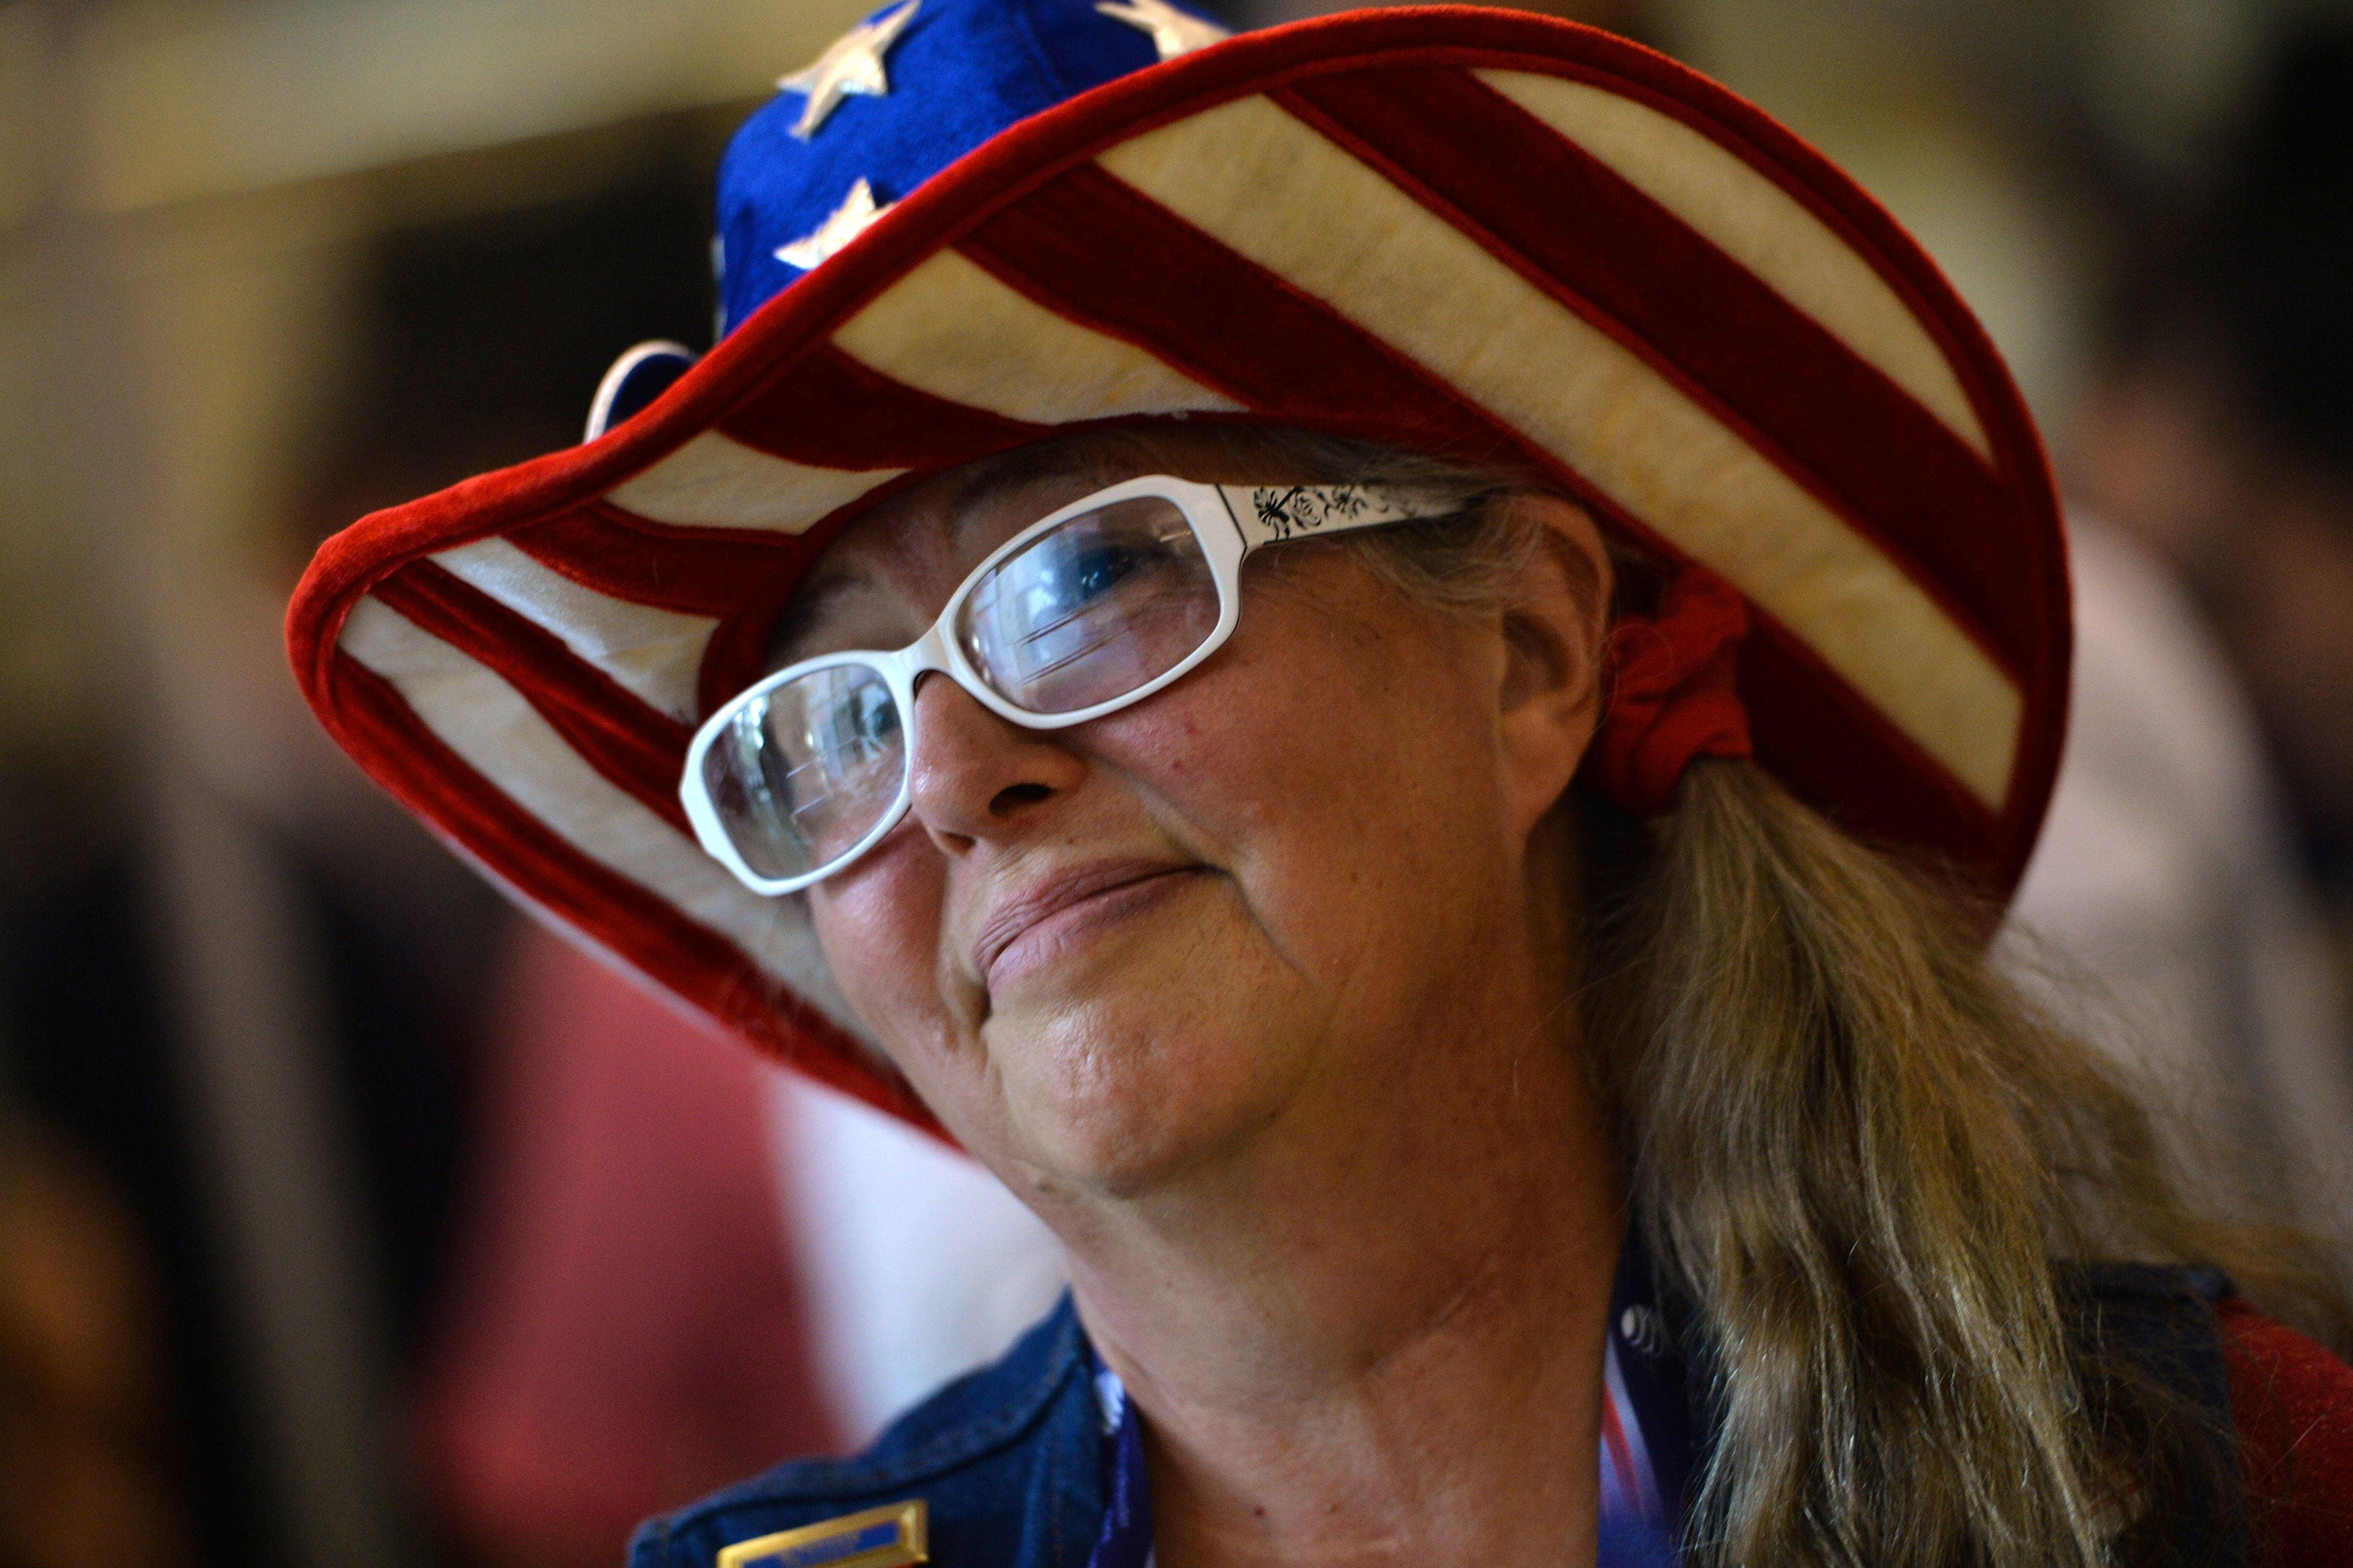 A delegate from Montana sports a star-spangled cowboy hat. (Photo: Kevin Dietsch/UPI/Newscom)